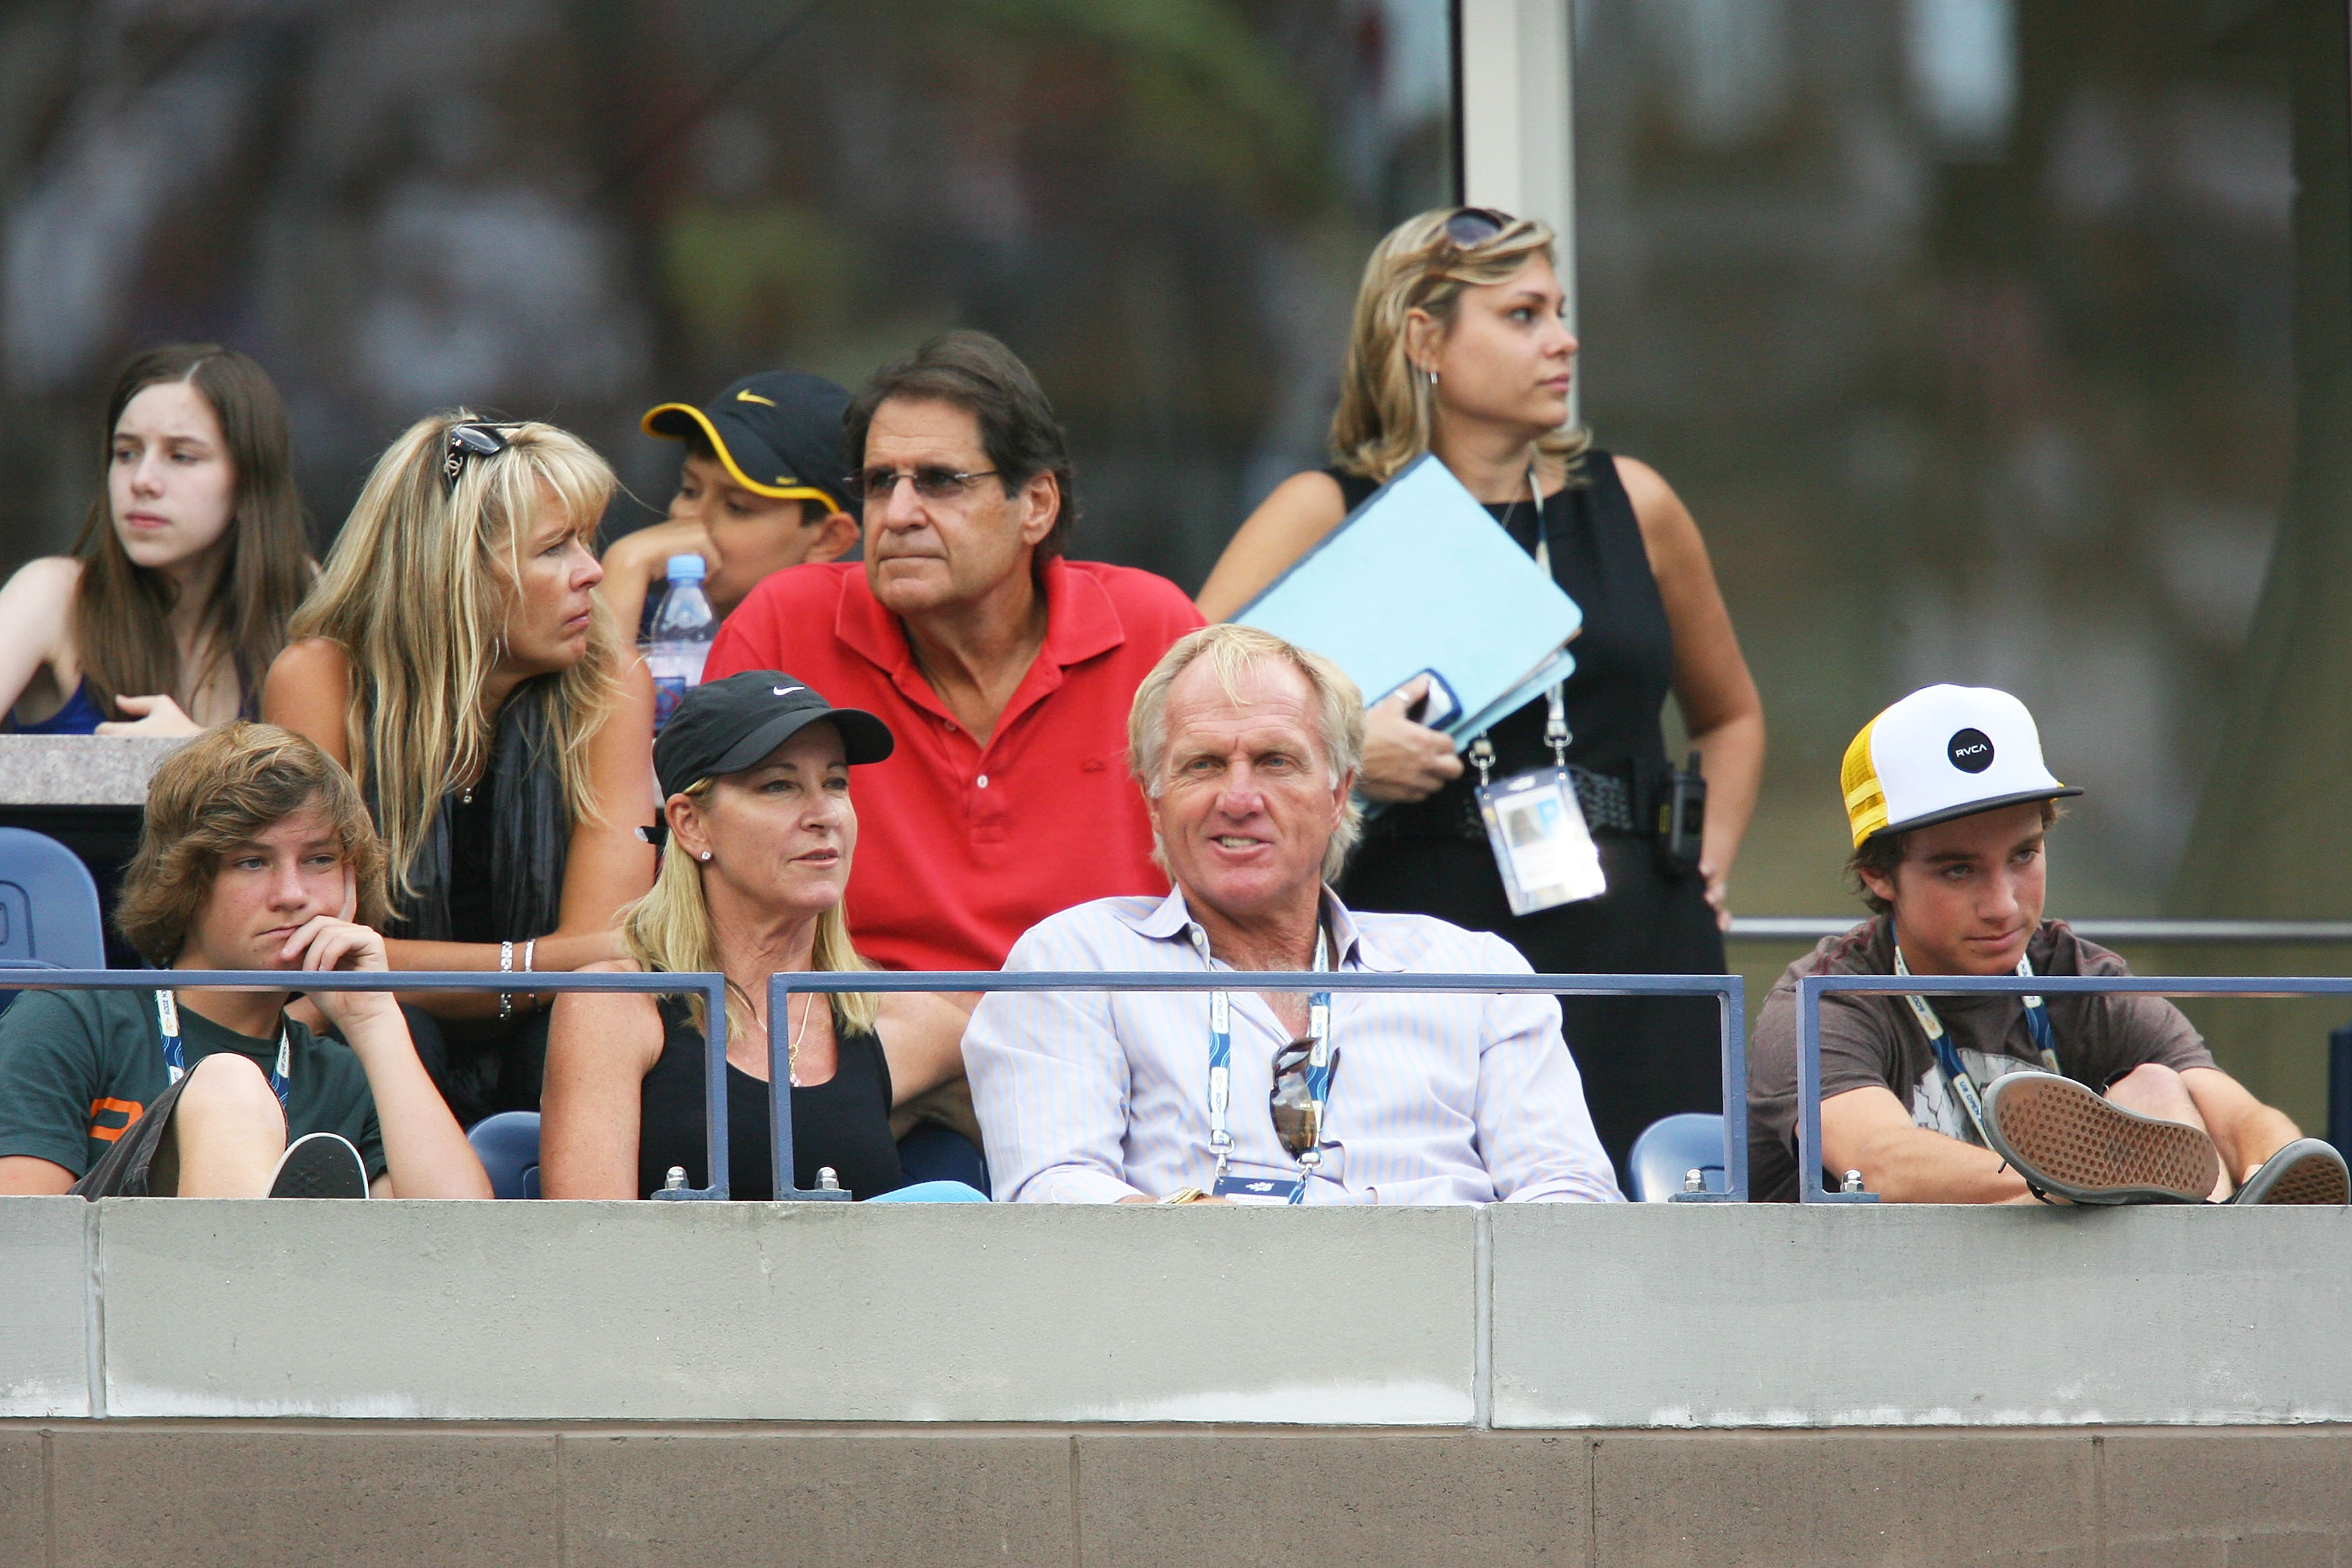 Former tennis pro Chris Evert and golfer Greg Norman watch the match in 2009